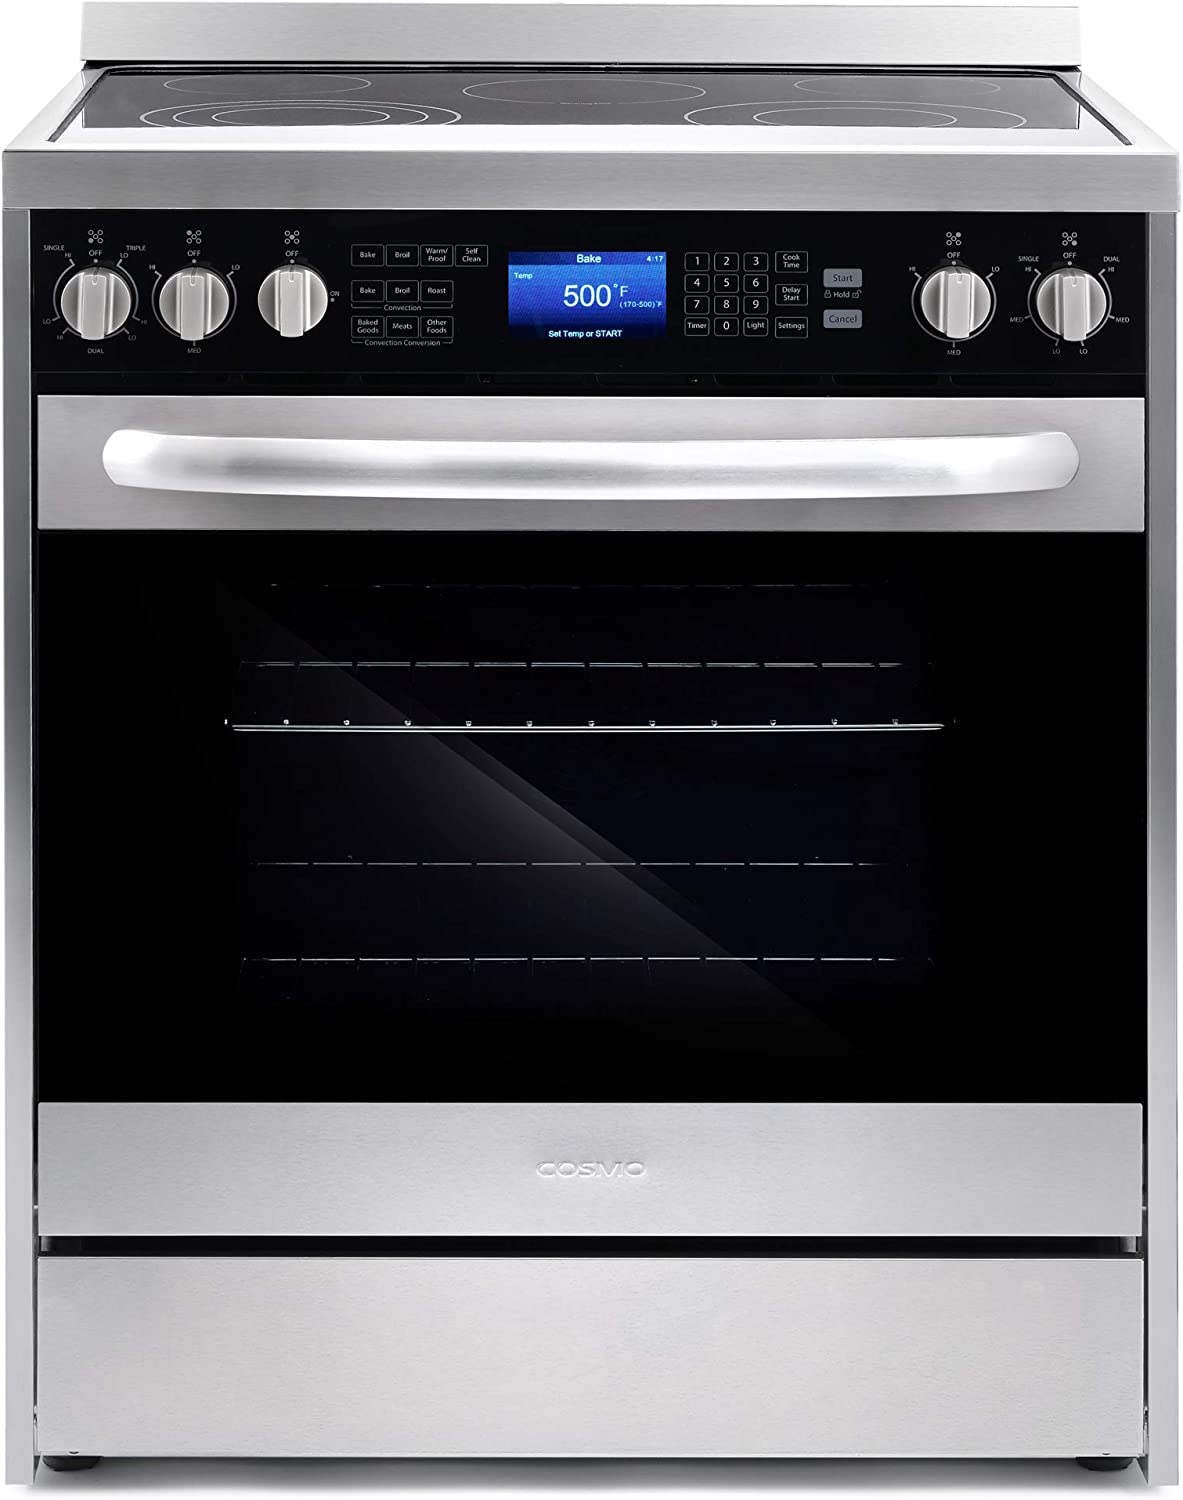 Cosmo COS-305AERC Commercial-Style Electric Range with 4 Burners / 1 Warming Zone and 5 cu. ft. Capacity Oven with 7 Functions, Turbo True European Convection, 30 inch, Stainless Steel